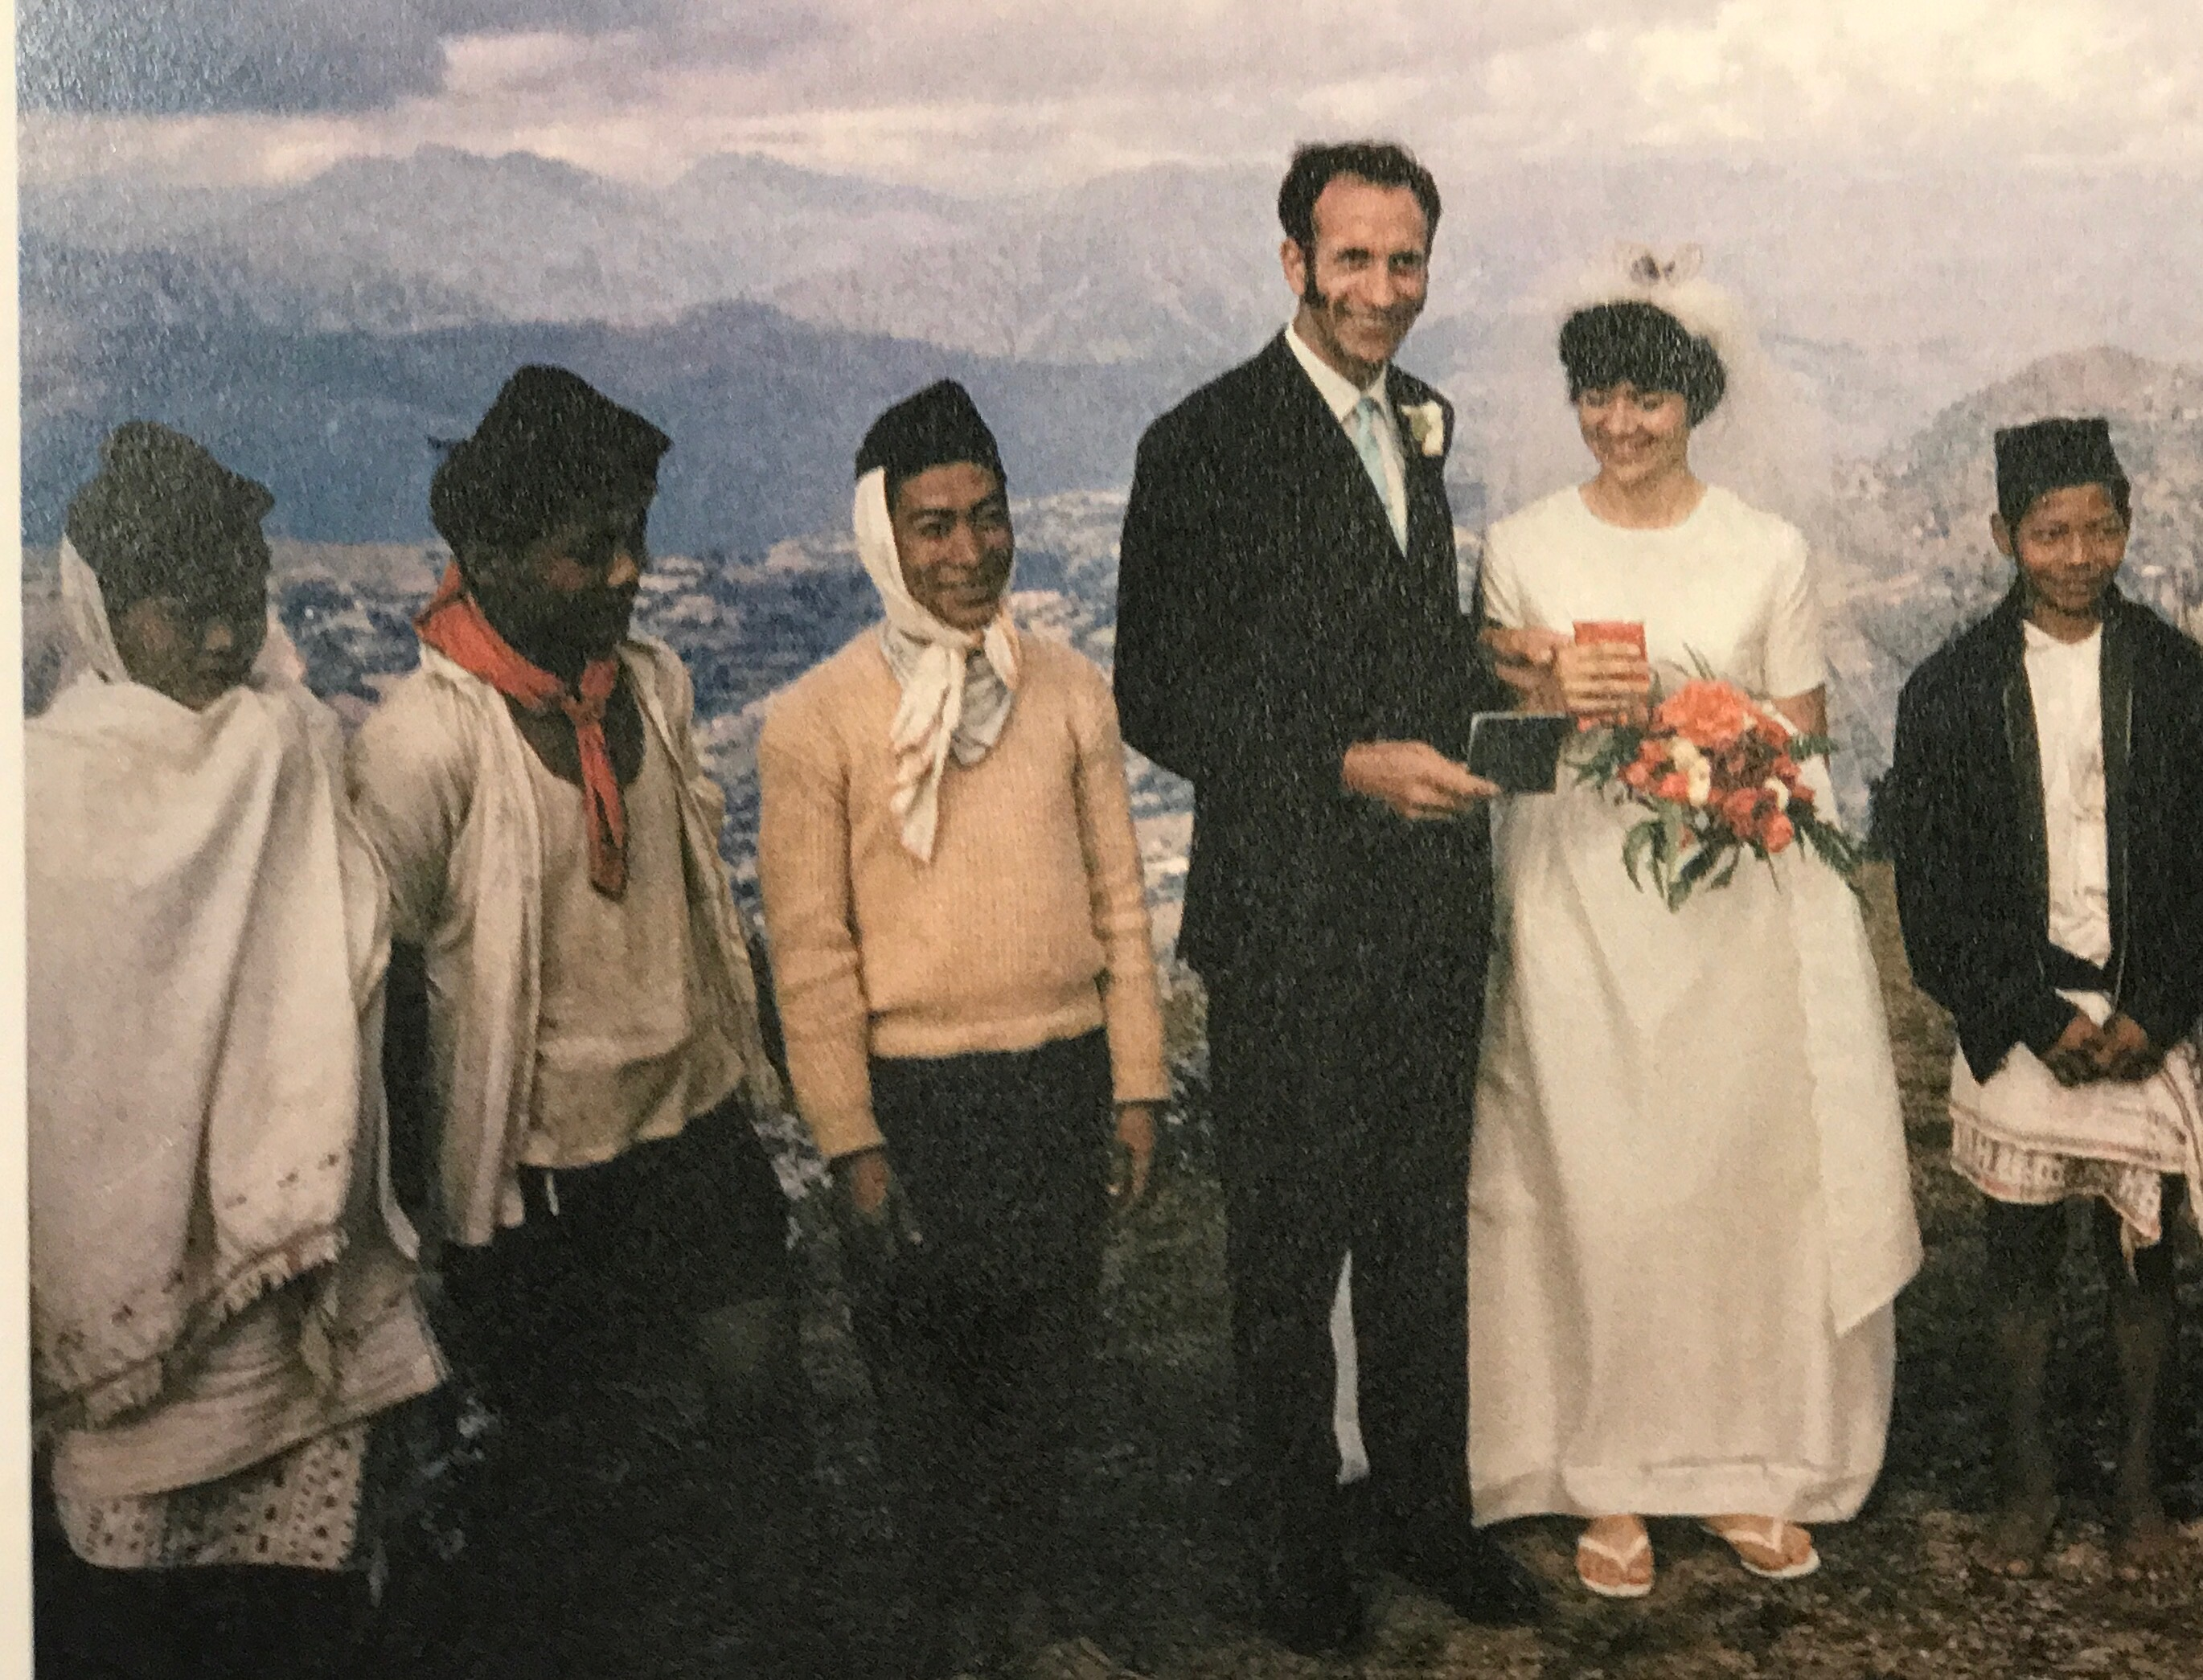 Marcella's Story – A Missionary Adventure